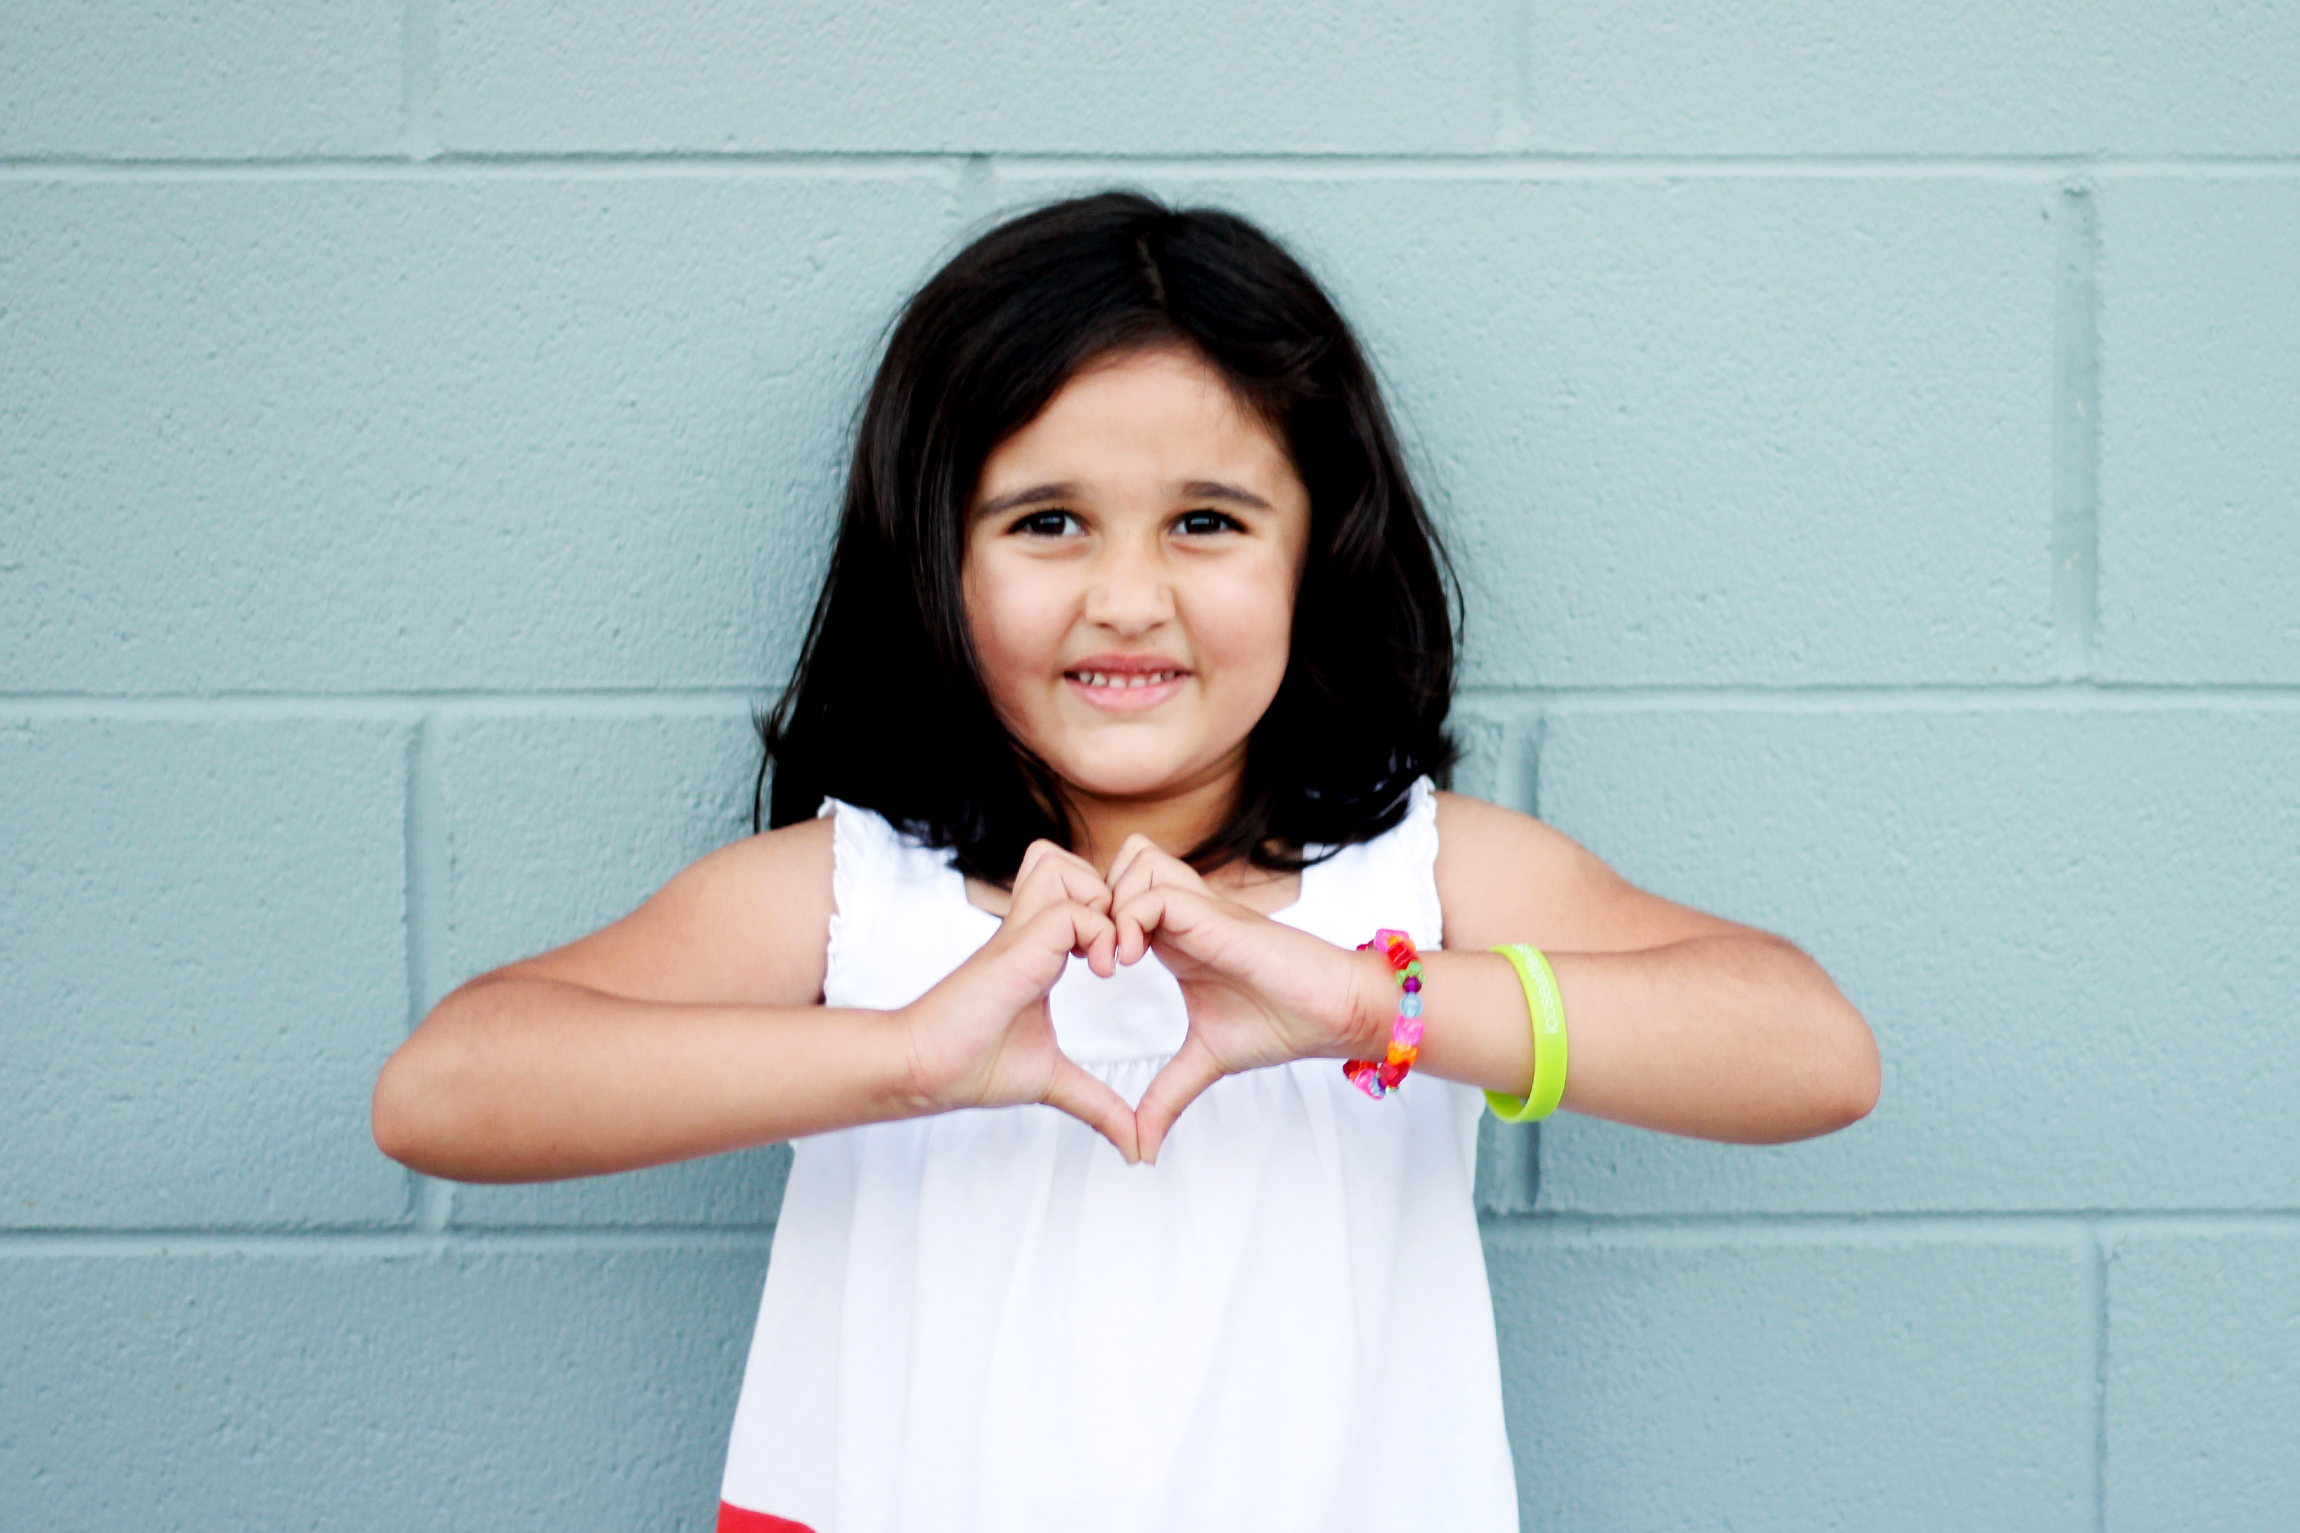 Gifted with Generosity - THE HEART THAT GIVES - All Kids Are Gifted